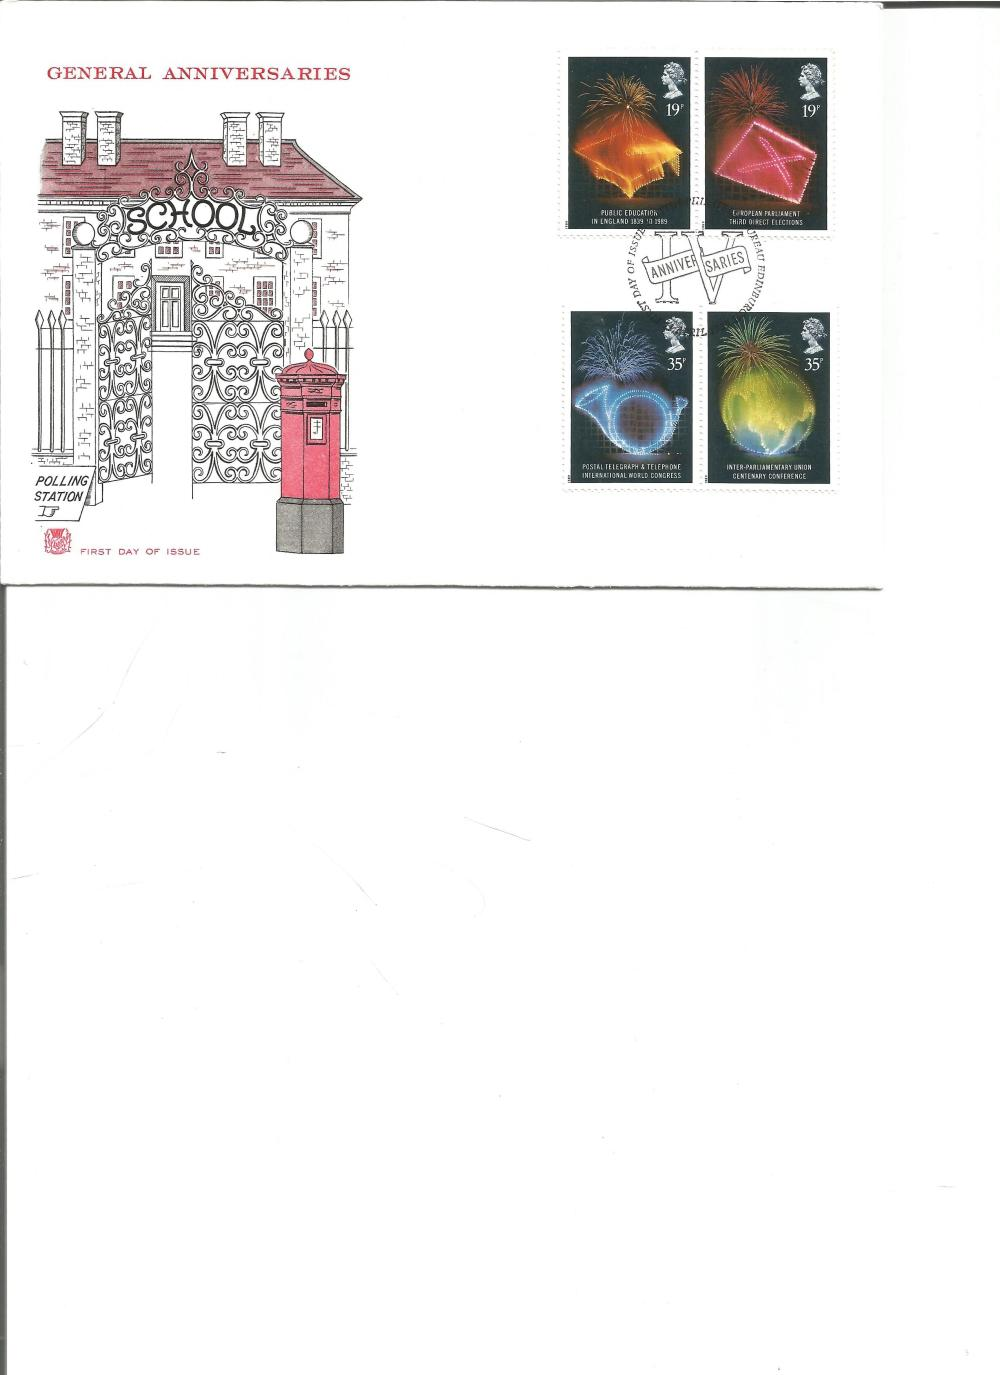 FDC General Anniversaries c/w set of four commemorative stamps PM First Day of Issues Philatelic